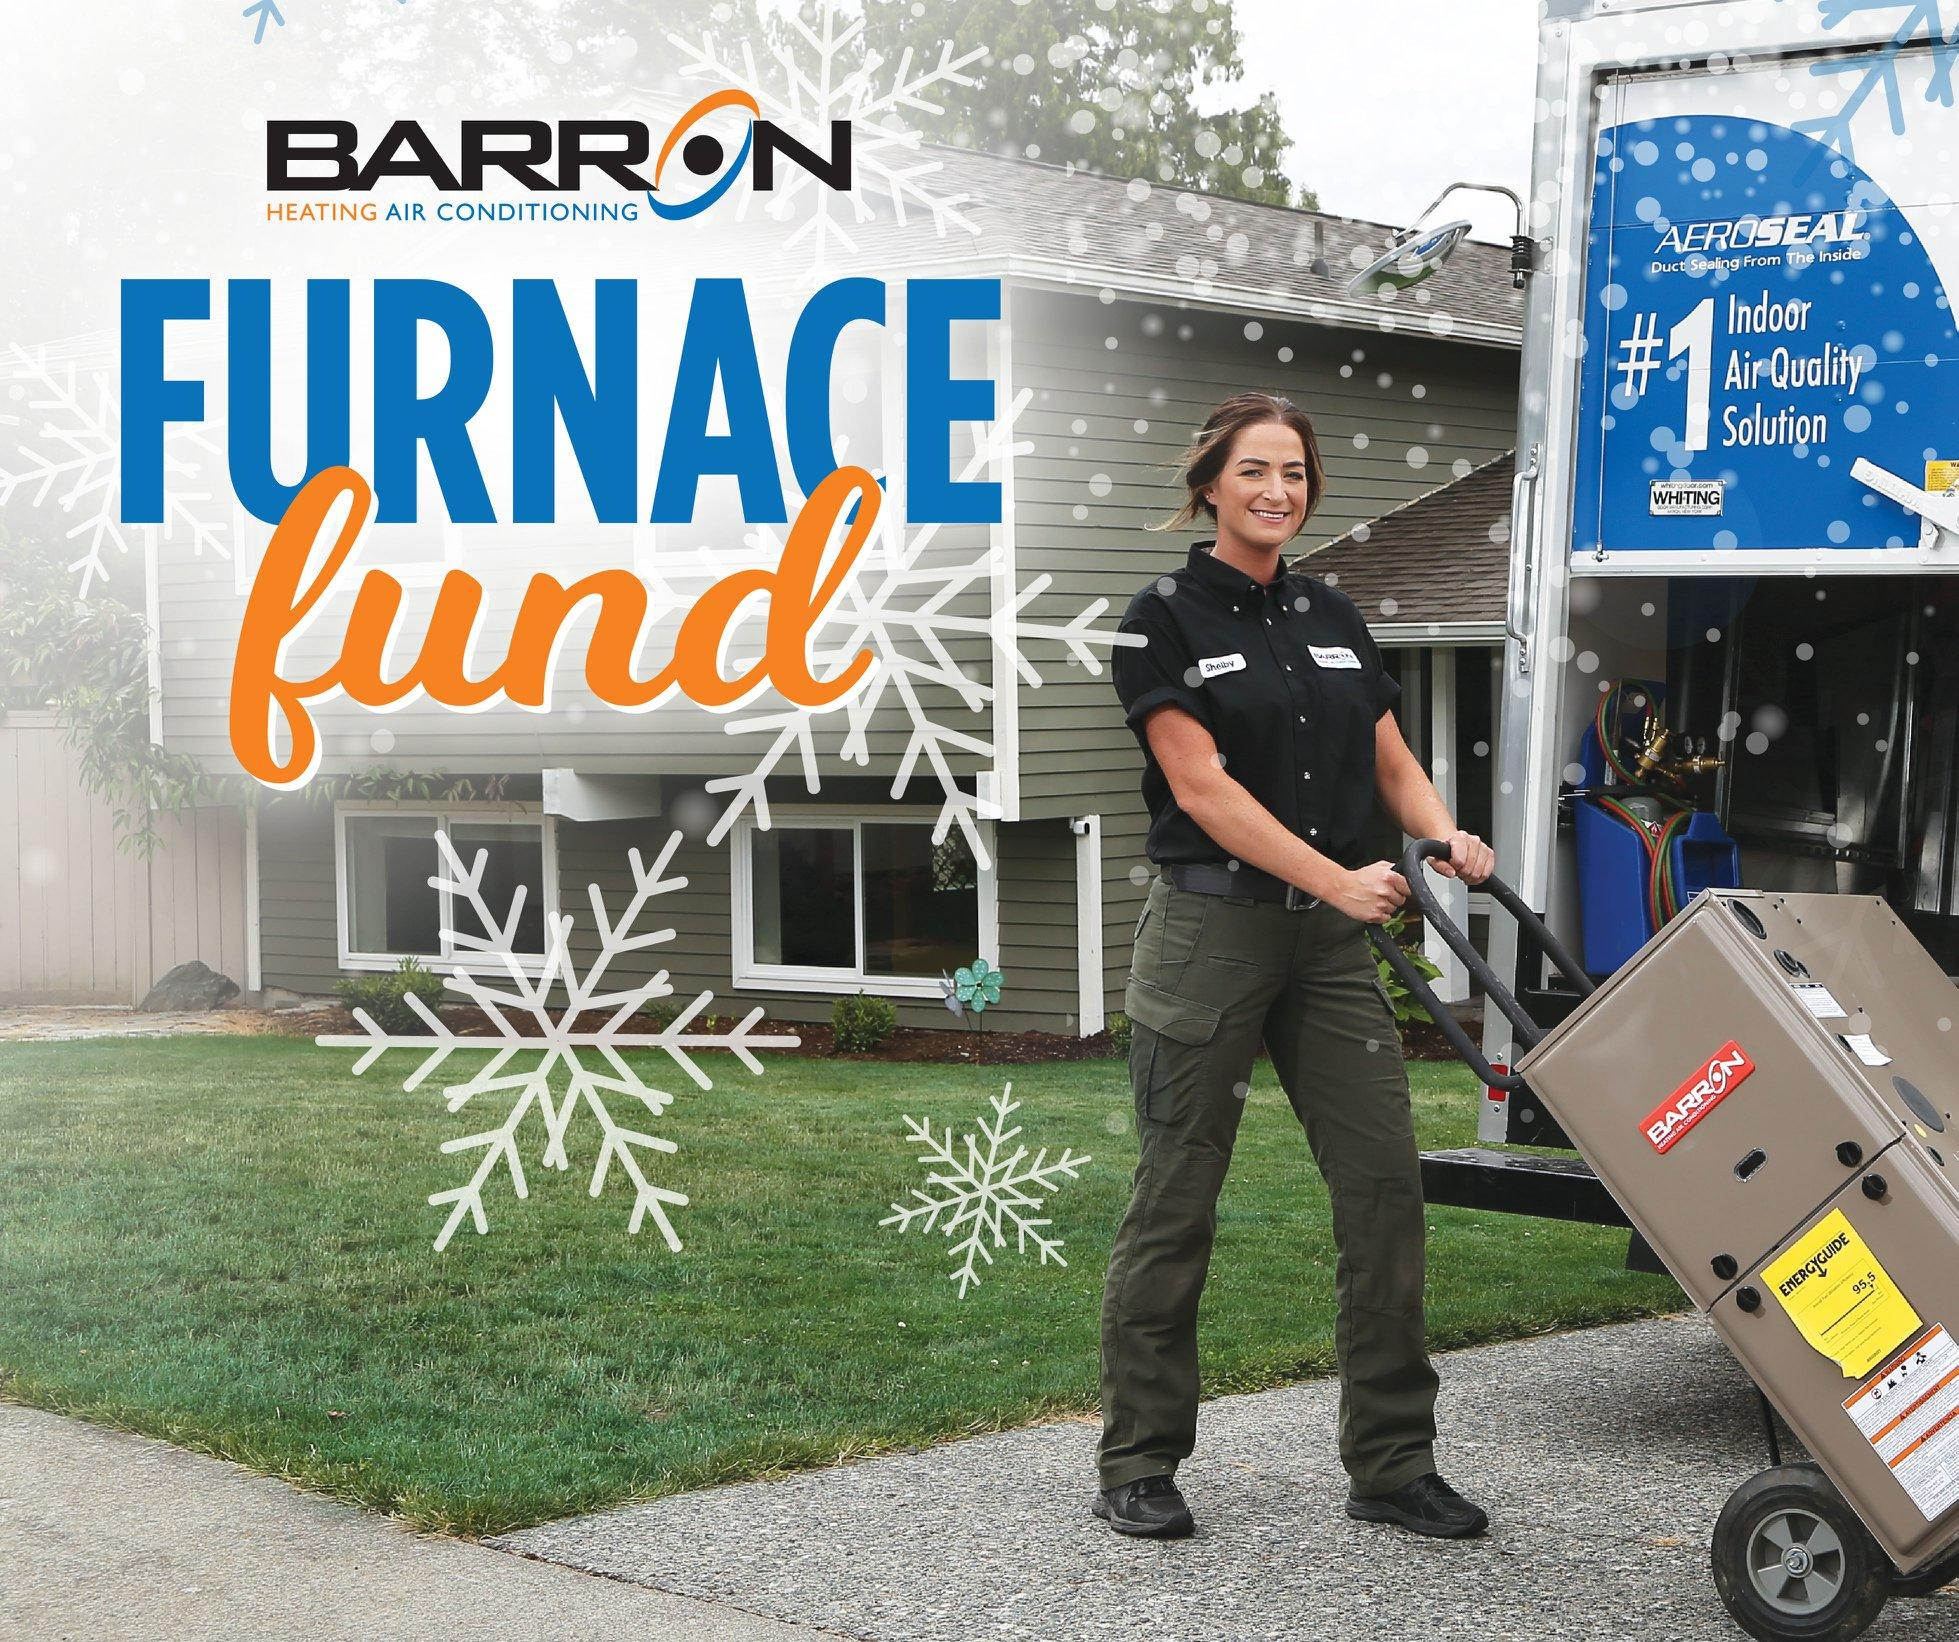 Barron Heating & Air Conditioning image 2